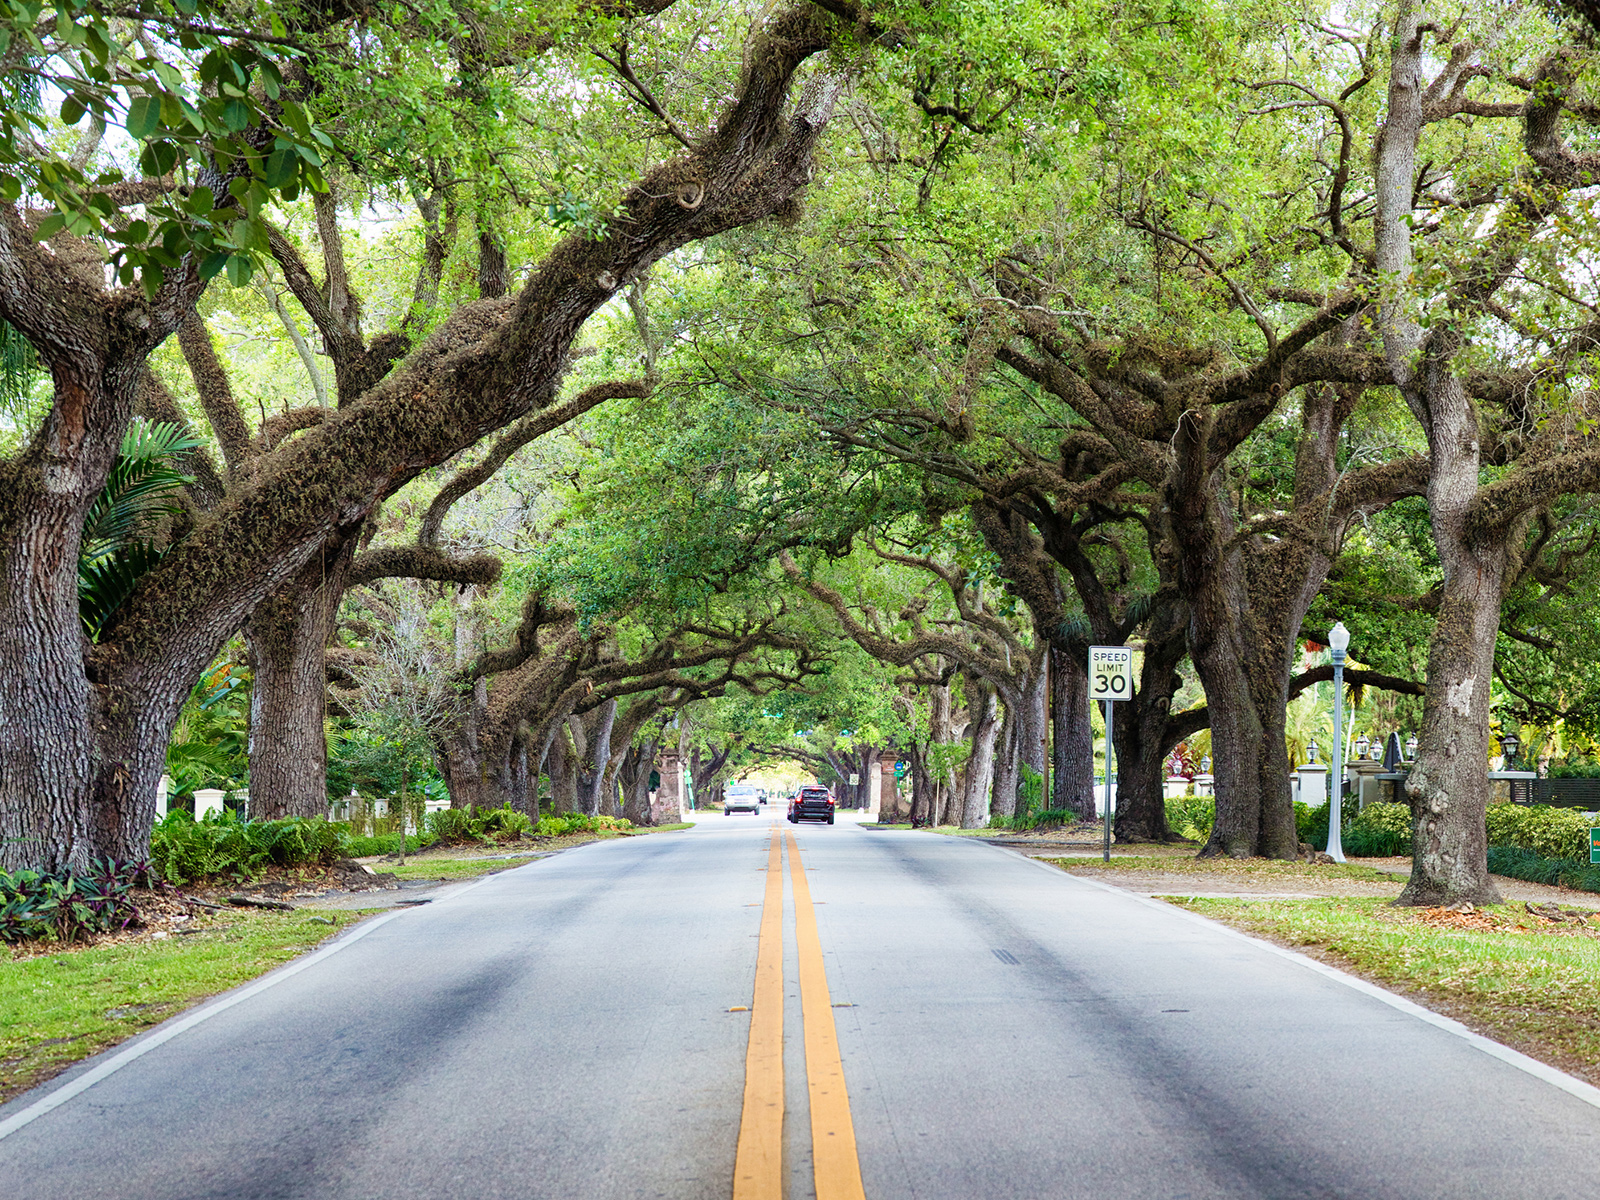 Moss and trees growing around a road in Coral Gables